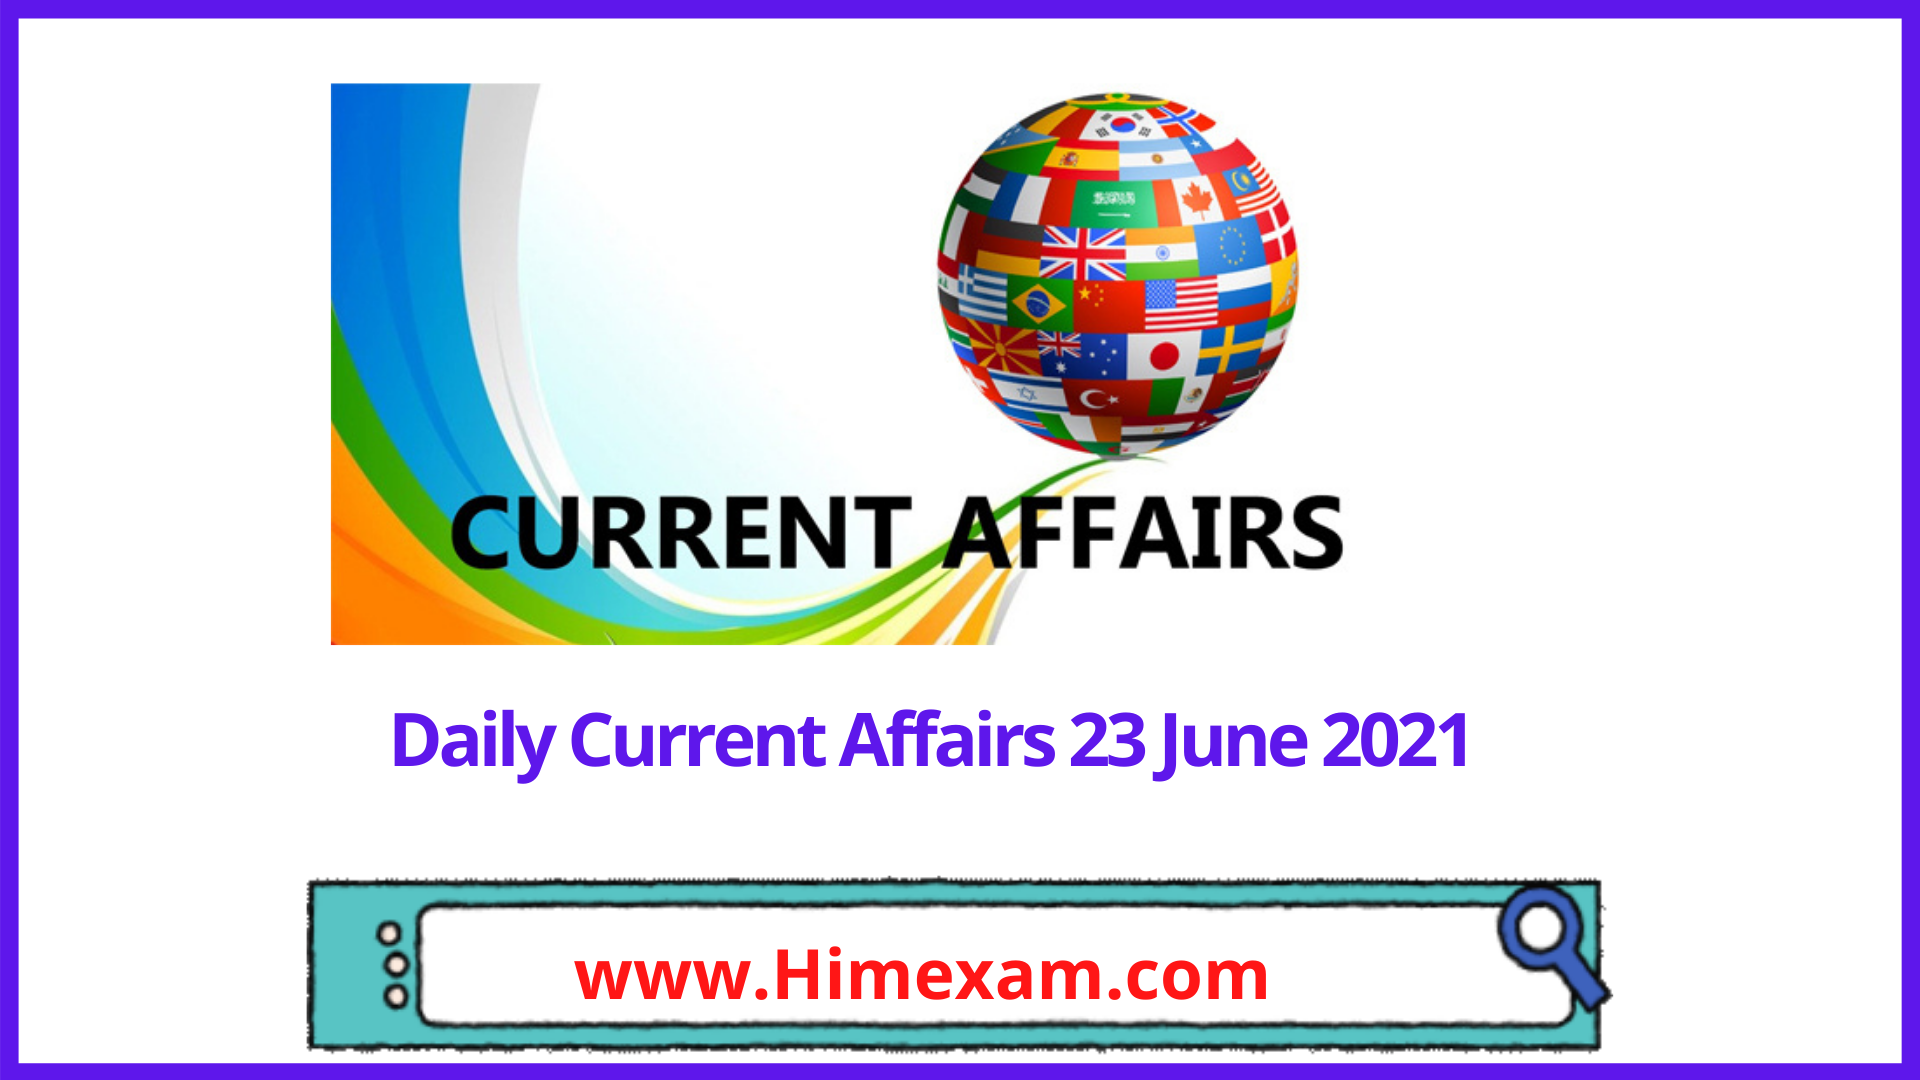 Daily Current Affairs 23 June 2021 In Hindi